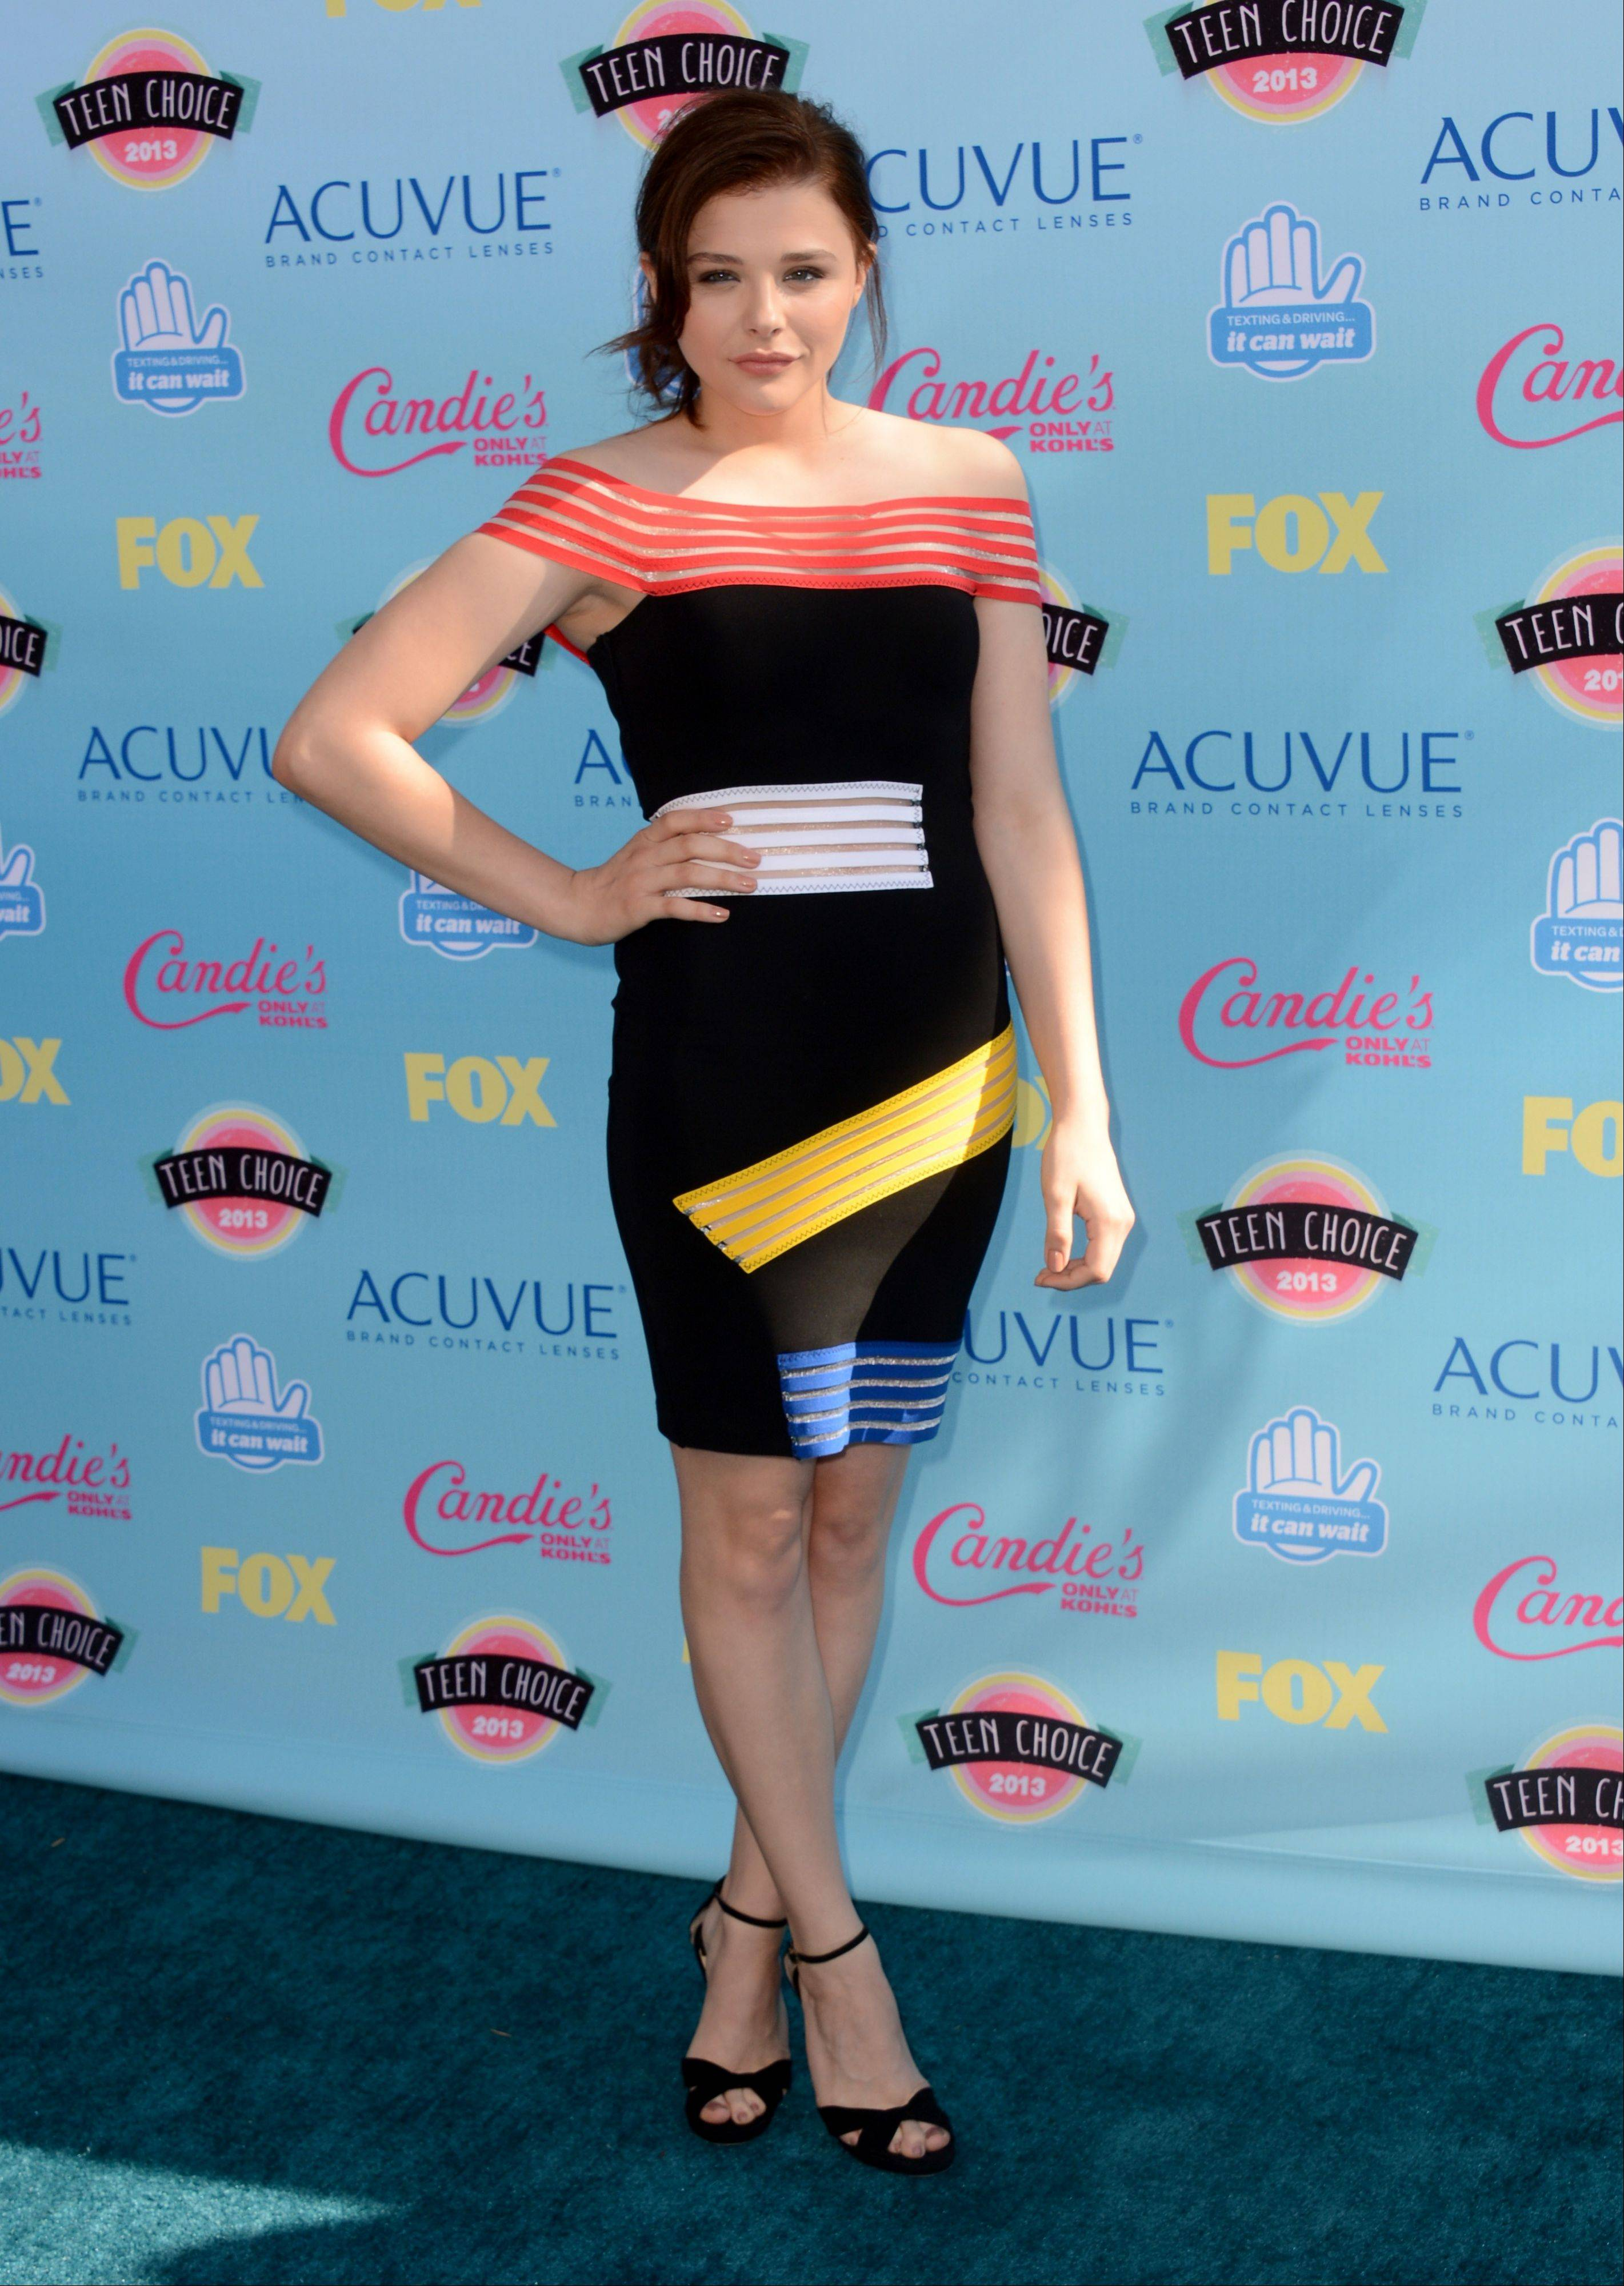 Actress Chloe Grace Moretz arrives at the Teen Choice Awards at the Gibson Amphitheater on Sunday.